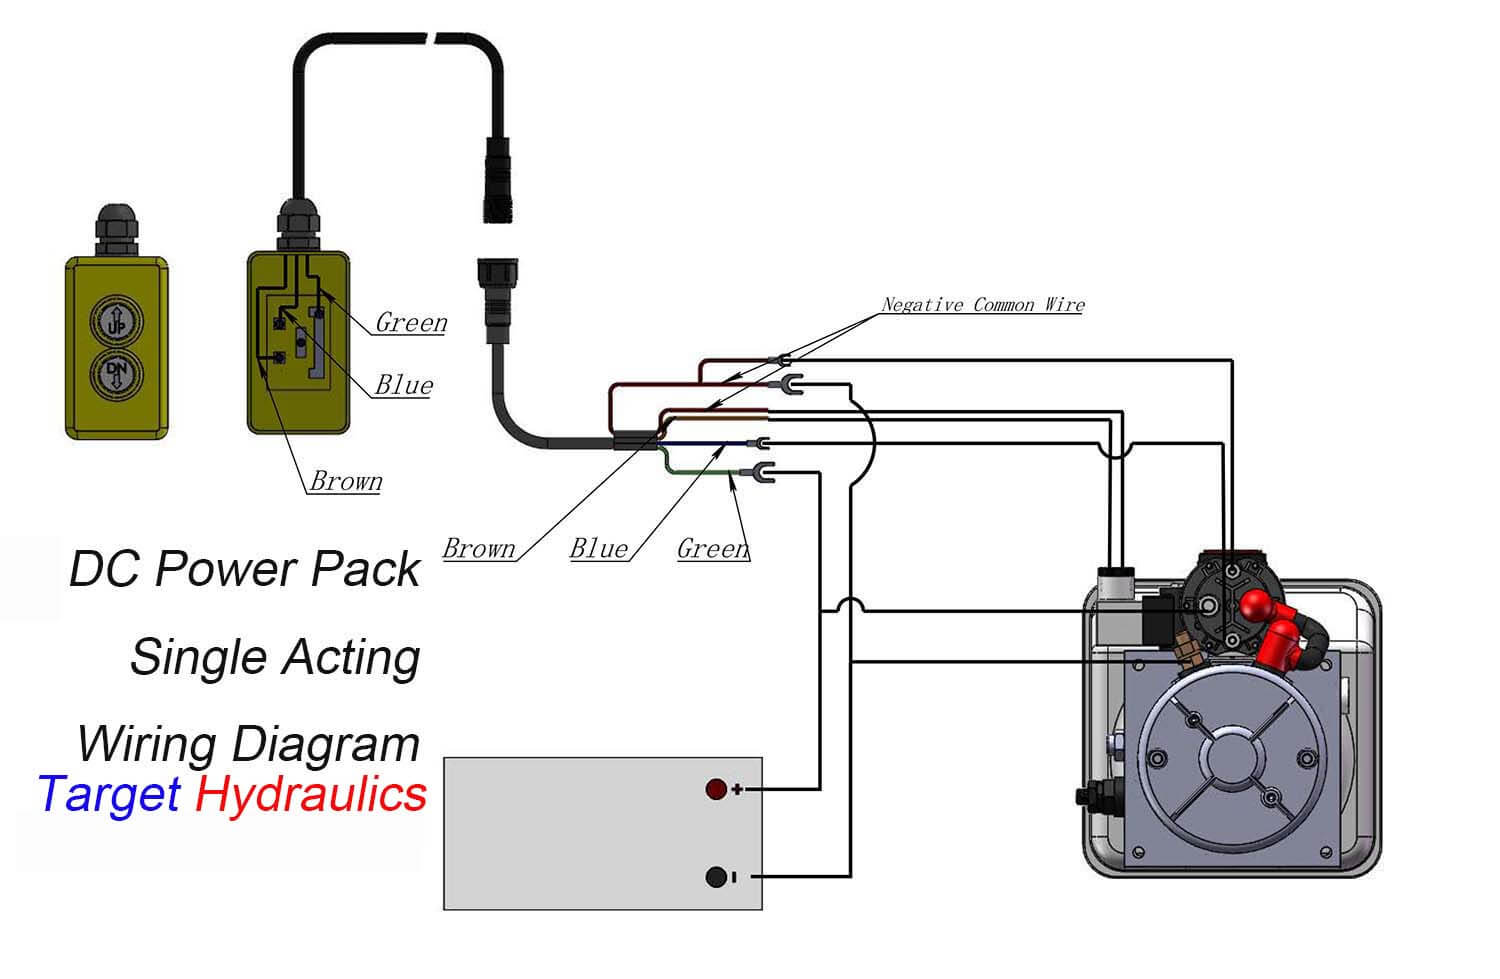 How to Wire_DC Motor Single Acting Power Pack how to wire hydraulic power pack,power unit diagram design 110 Power Cord Diagram at sewacar.co